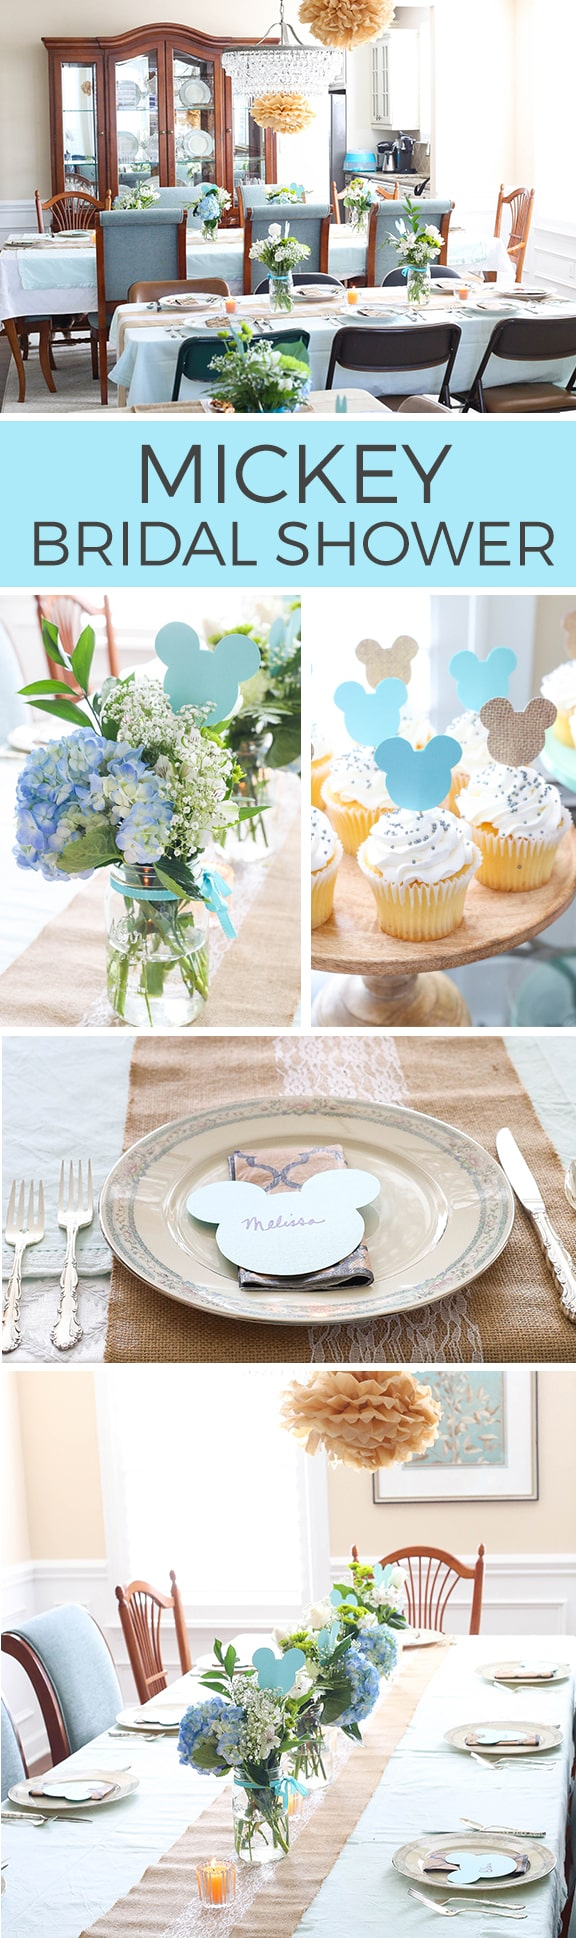 Mickey Bridal Shower - lace, burlap and mickey come together for a fun and sophisticated Disney bridal shower!